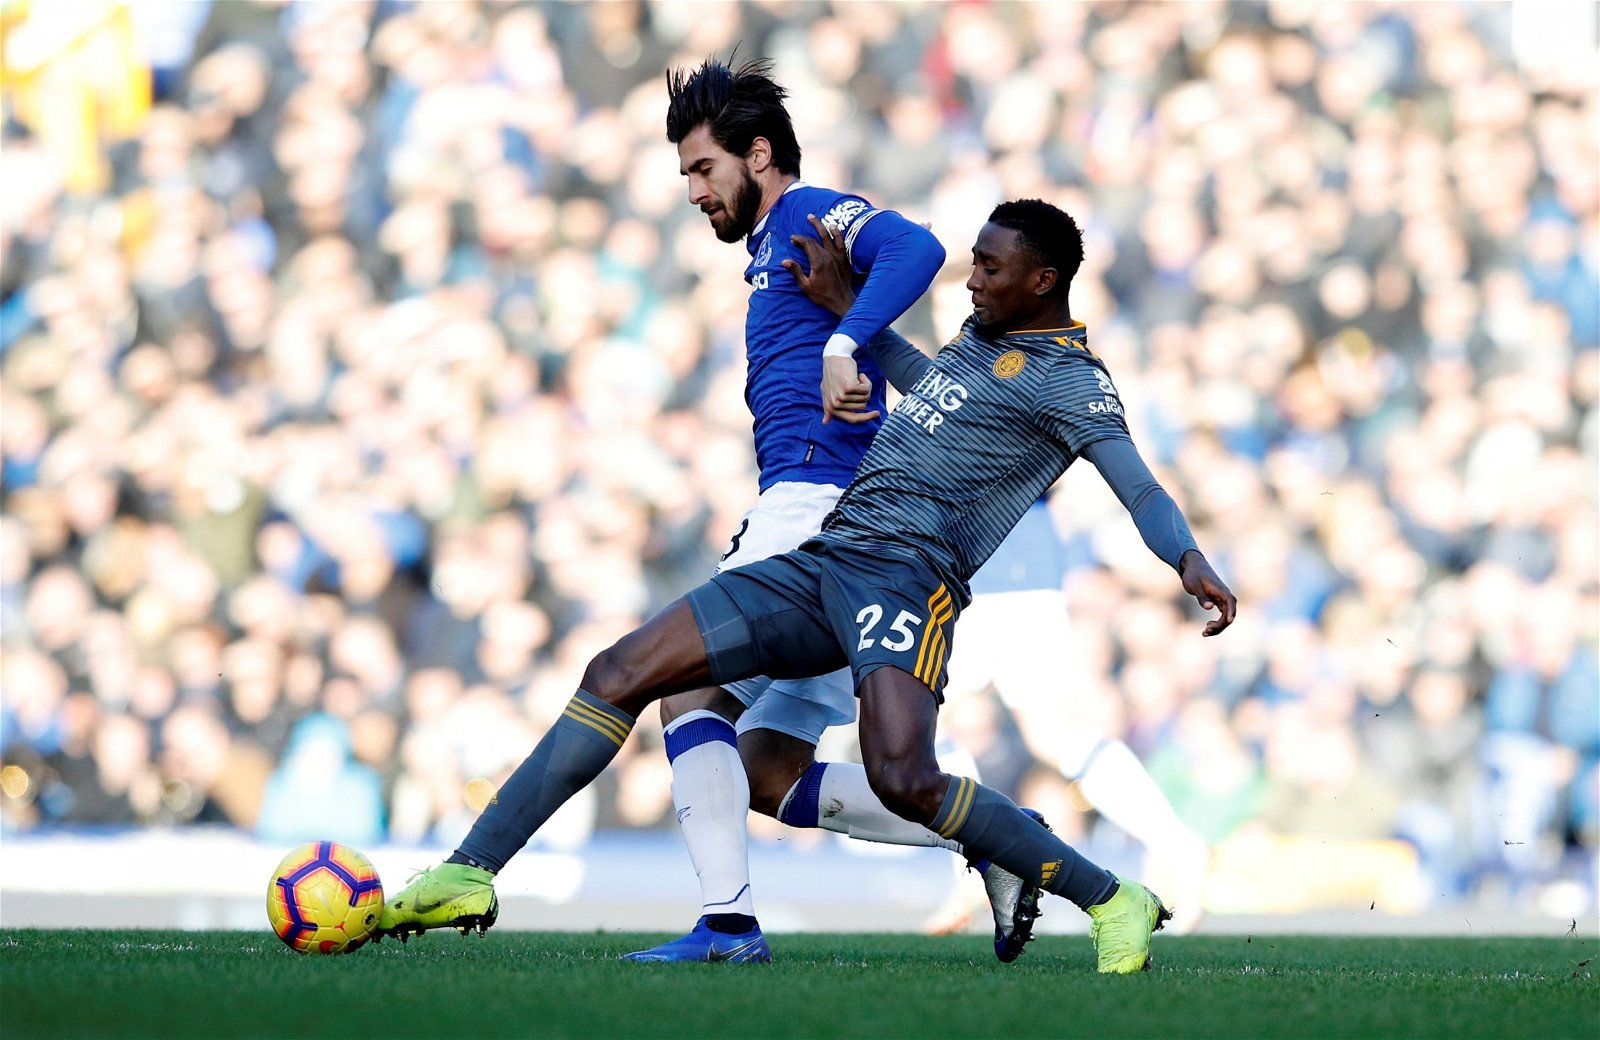 Andre Gomes goes head-to-head with Leicester City's Wilfred Ndidi during loan spell with Everton